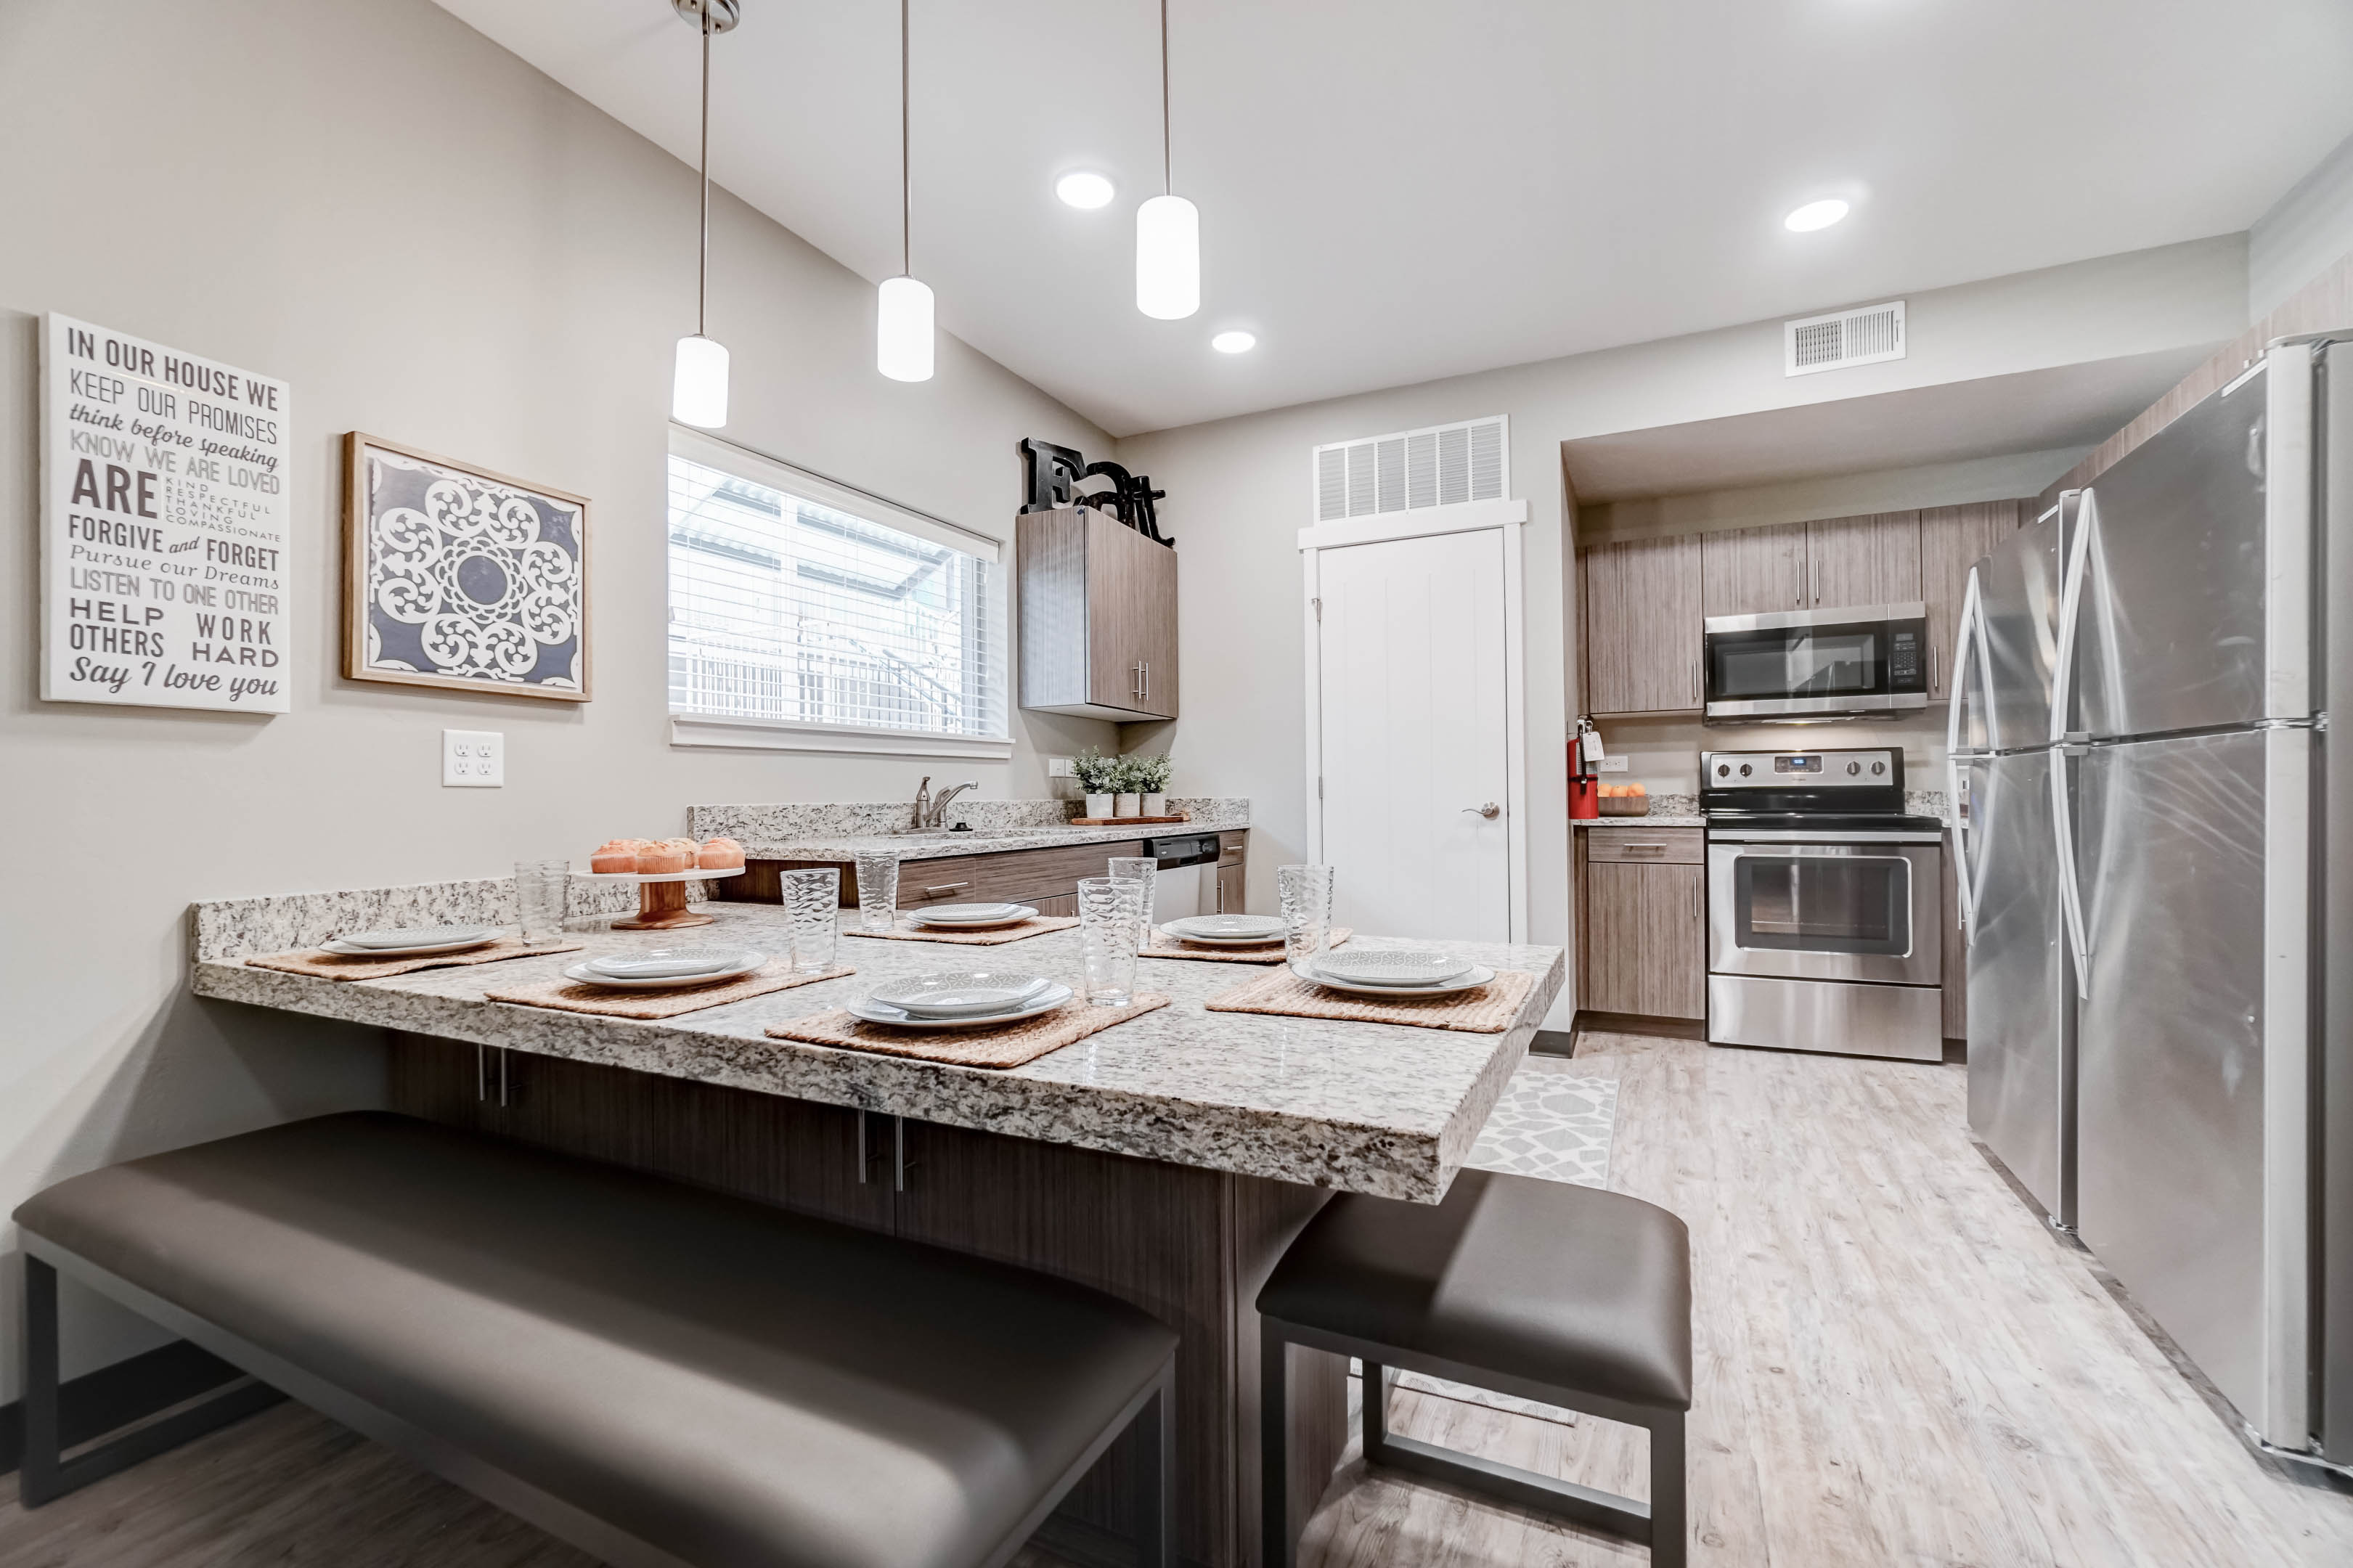 With two full-size refrigerators, granite countertops, lots of beautiful cabinets, stainless steel appliances, and a garbage disposal, the kitchen has everything you need!